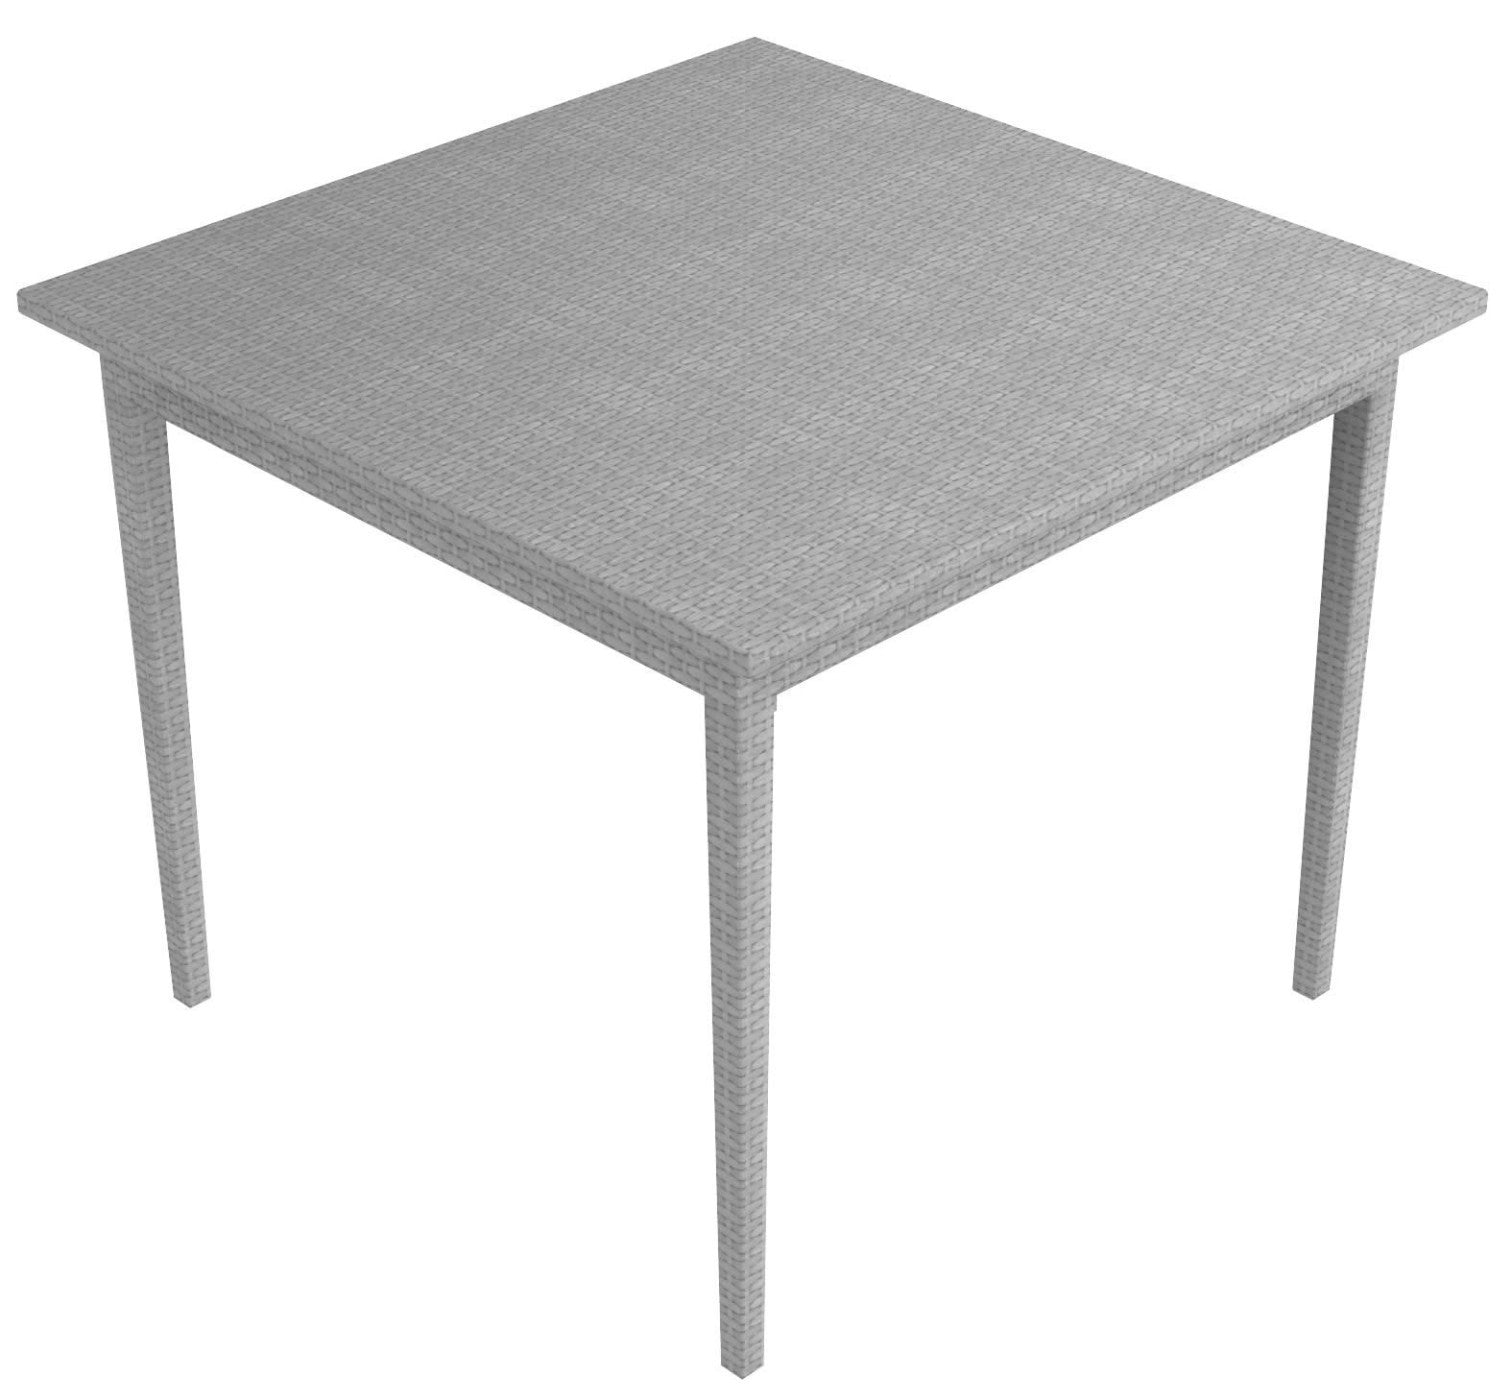 Sunlace WaProLace square table 90 x 90 cm